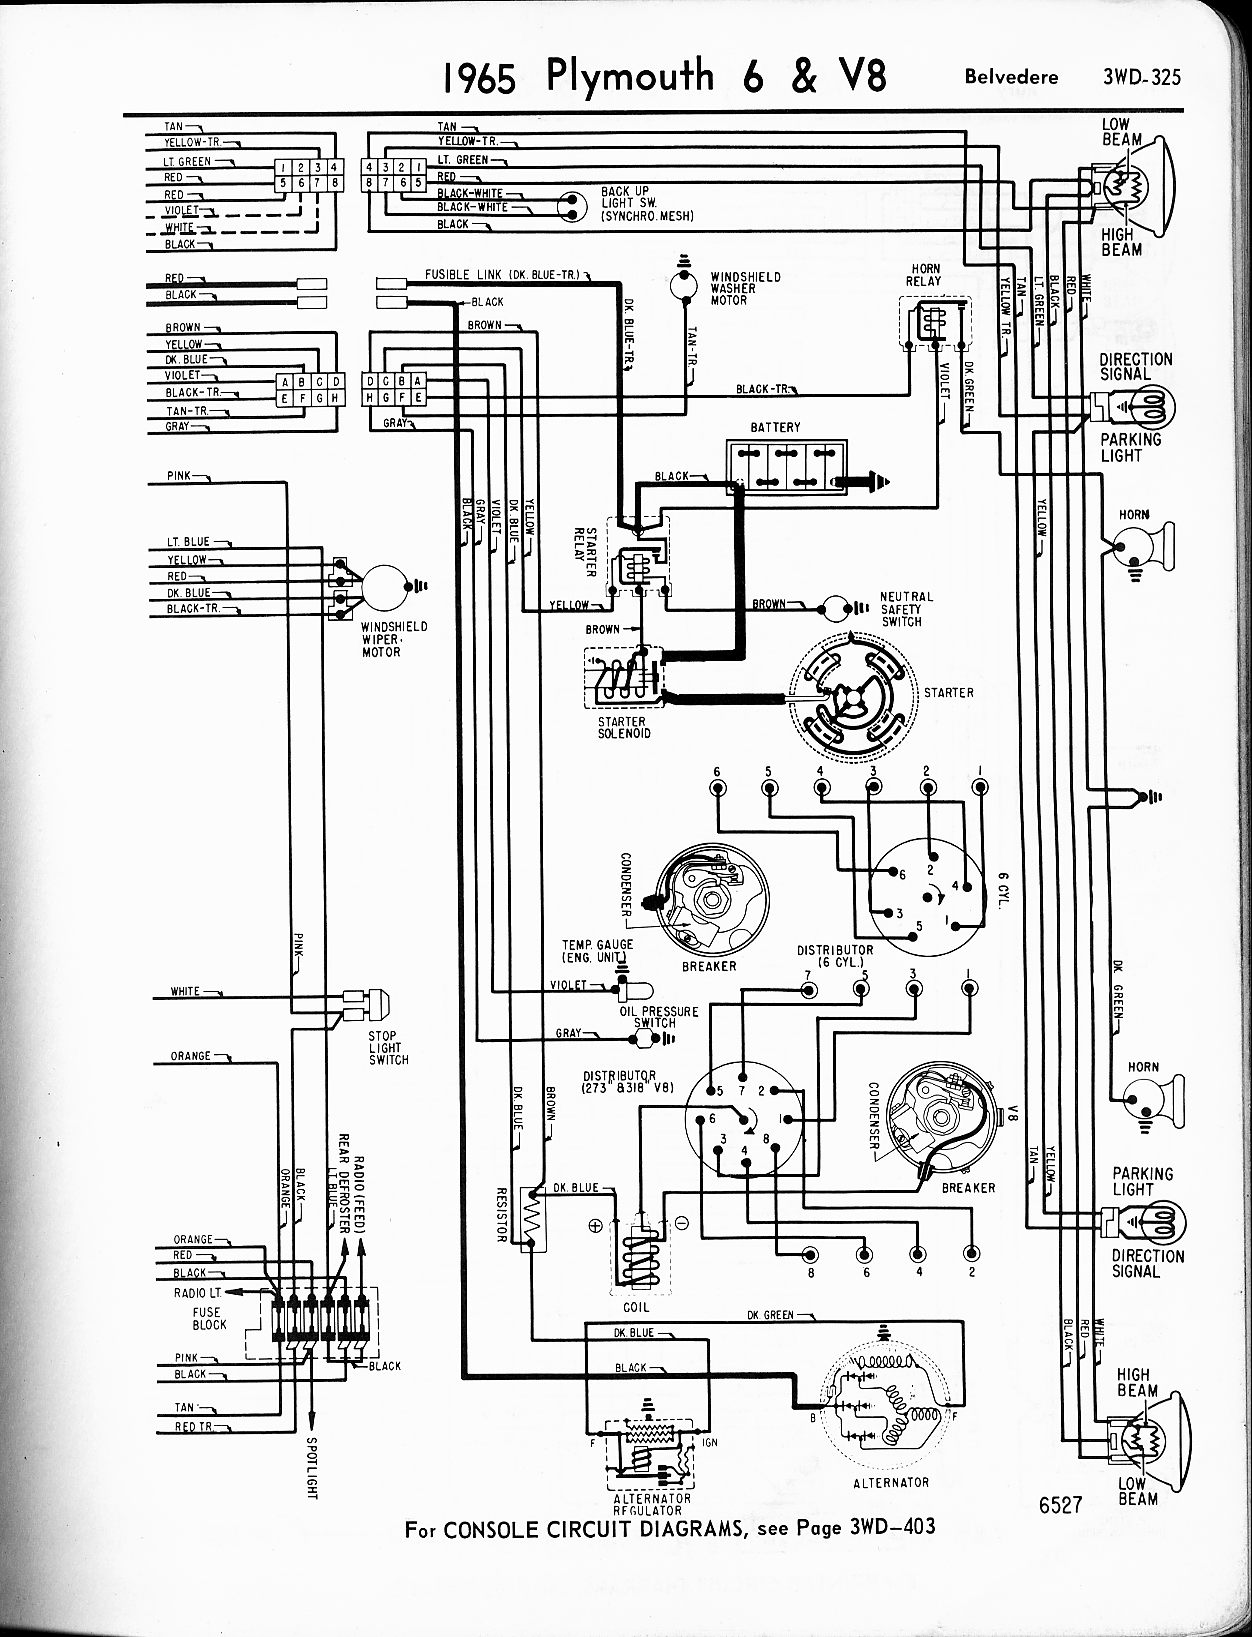 1967 vw bug headlight switch wiring wiring diagram database 1999 Ford F350 Wiring Diagram 1956 vw wiring diagram wiring diagram vw new beetle headlight replacement 1956 vw wiring diagram